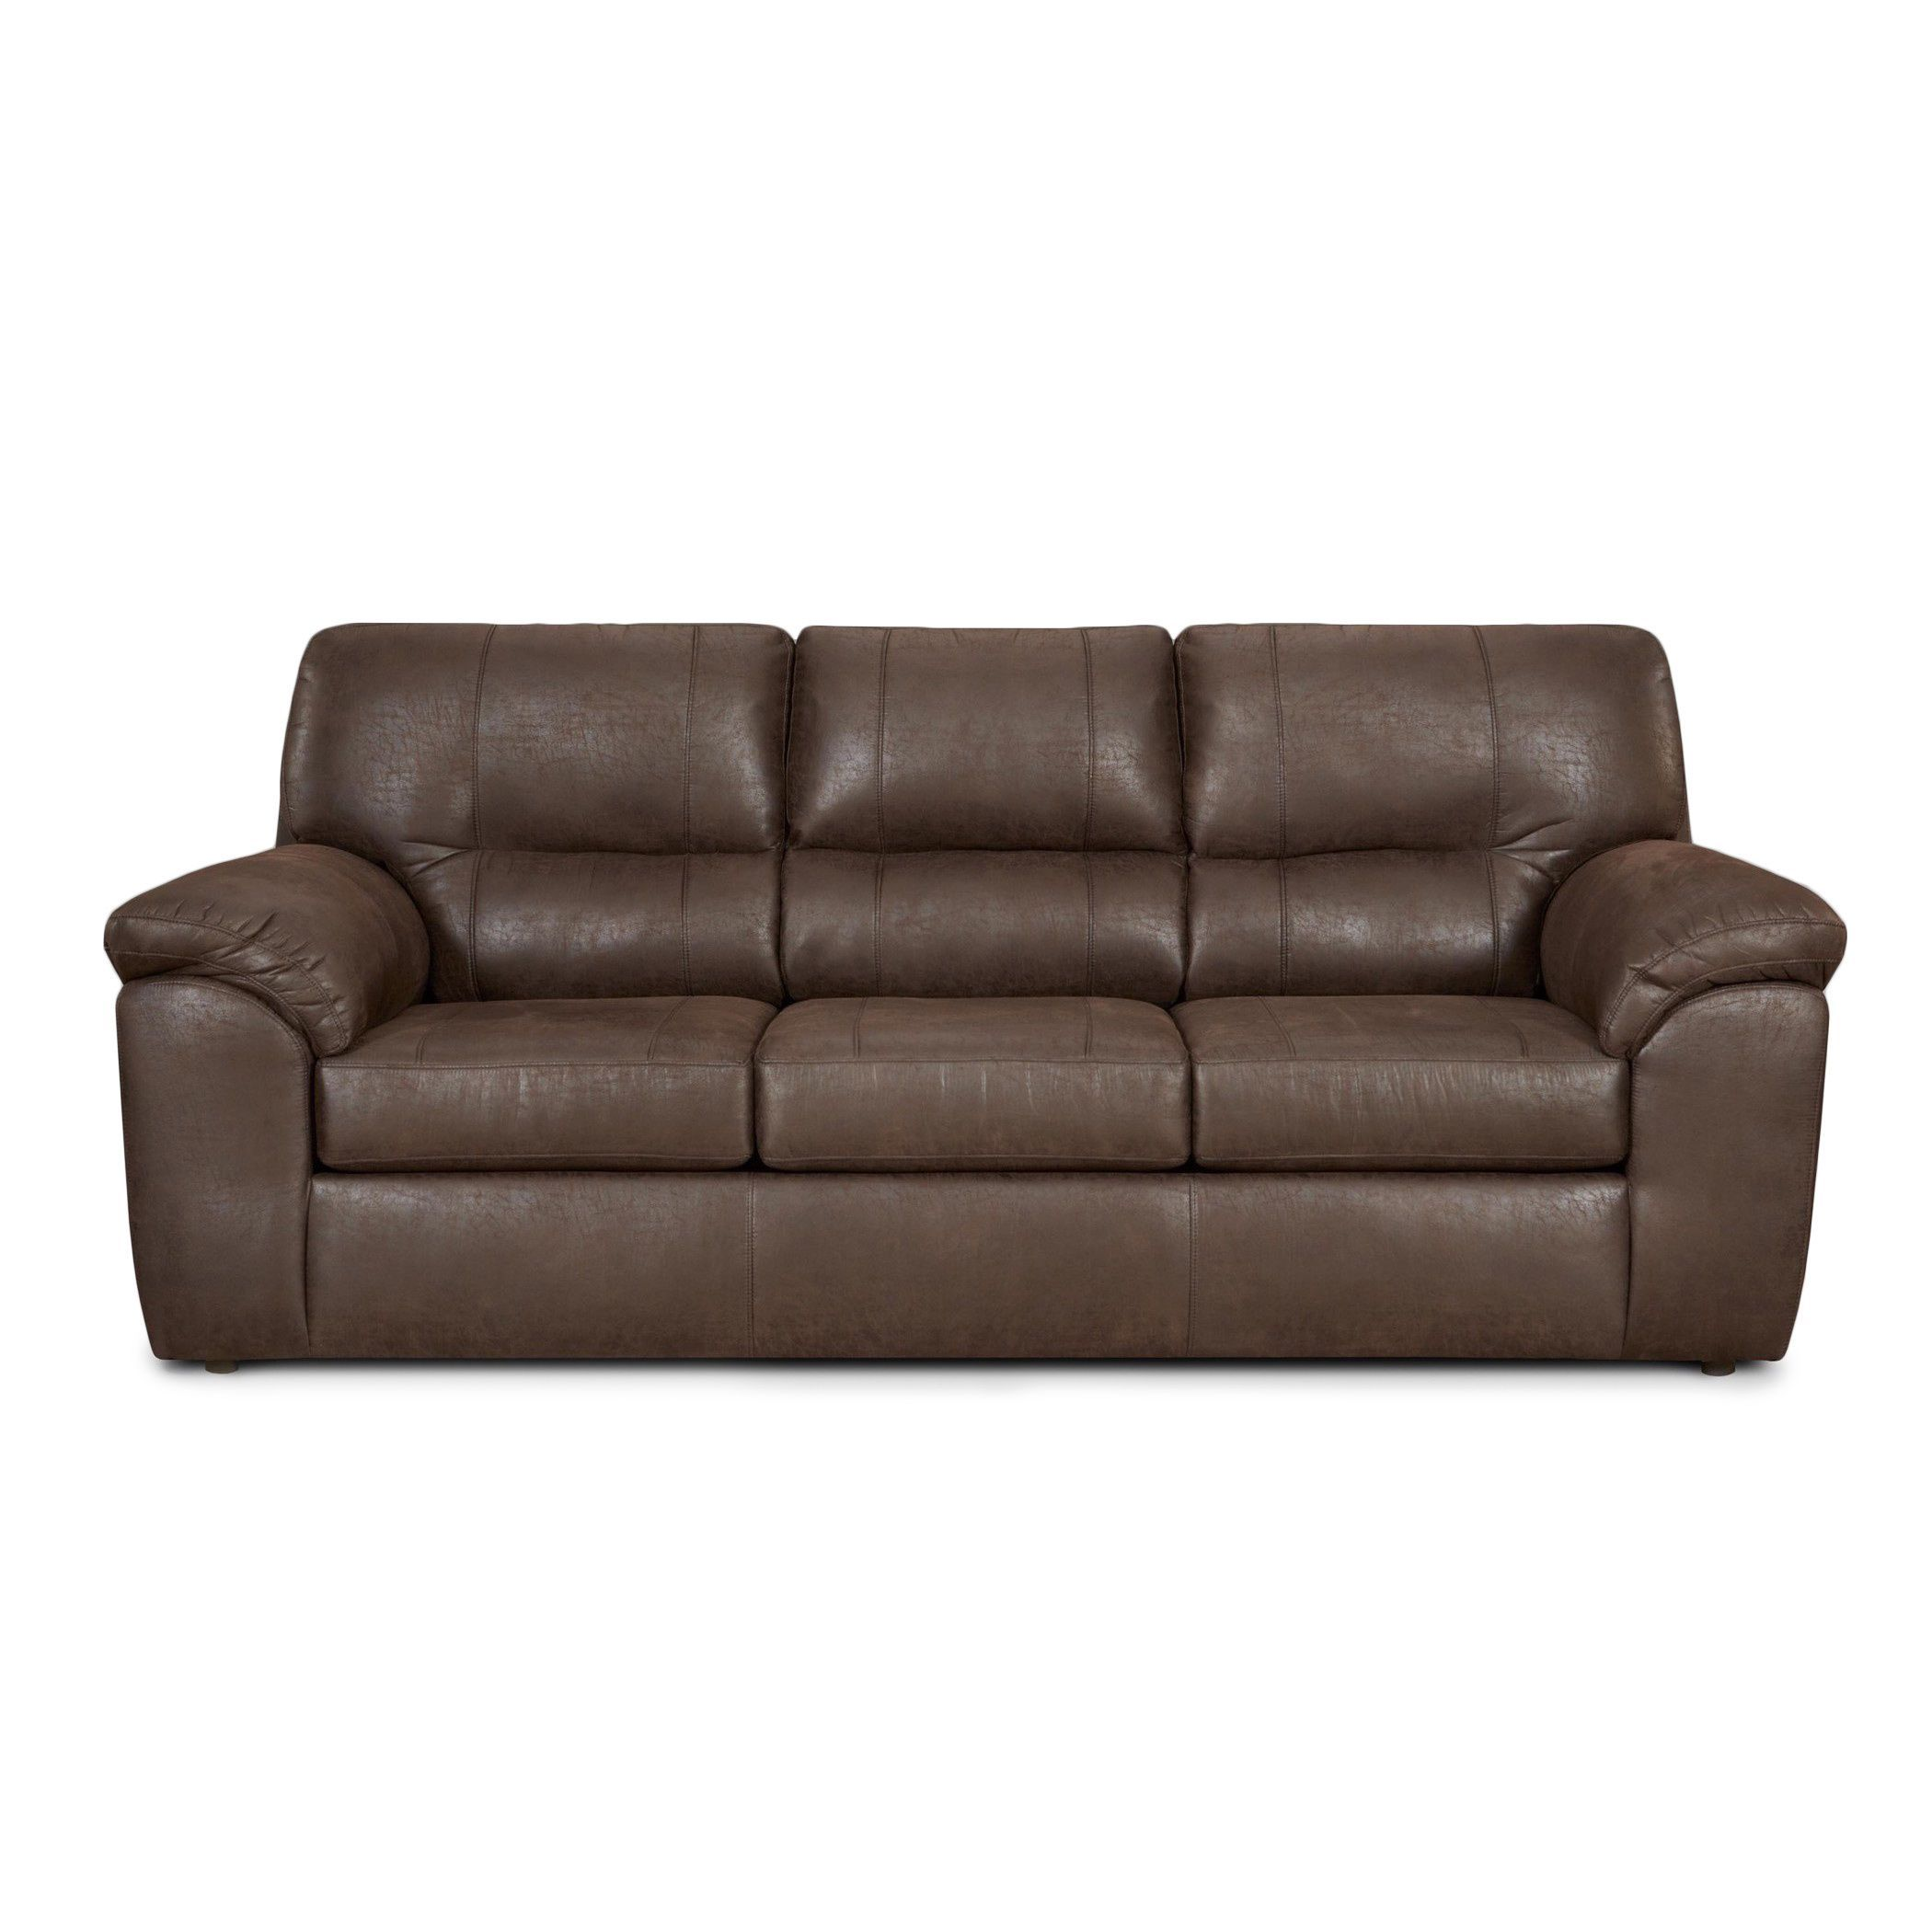 Chance sable sleeper sofa chance sleeper sofa brown polyester